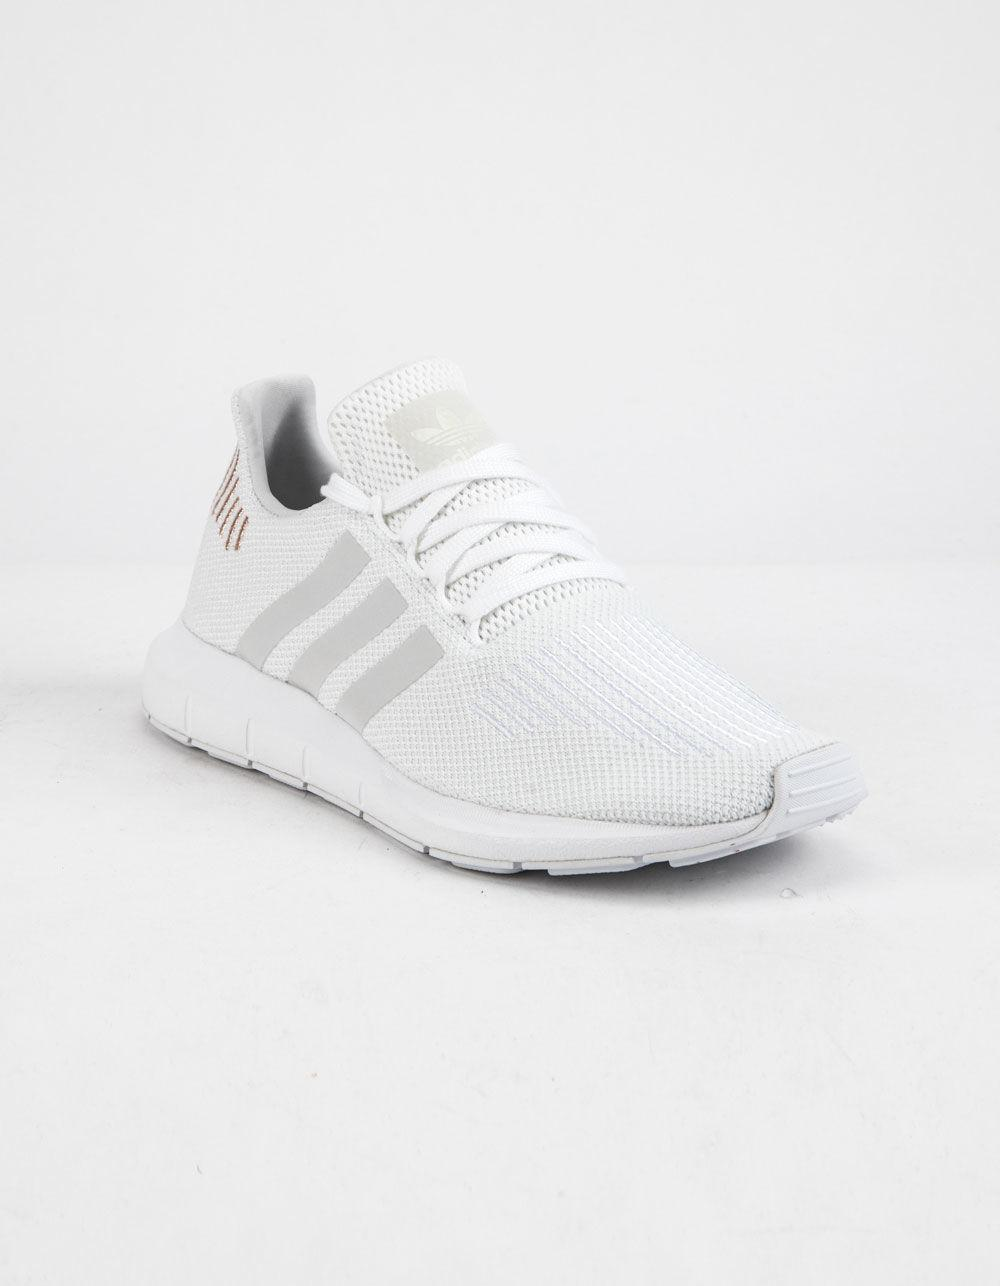 Lyst - adidas Swift Run Cloud White   Crystal White Womens Shoes in White 6c52c79a59